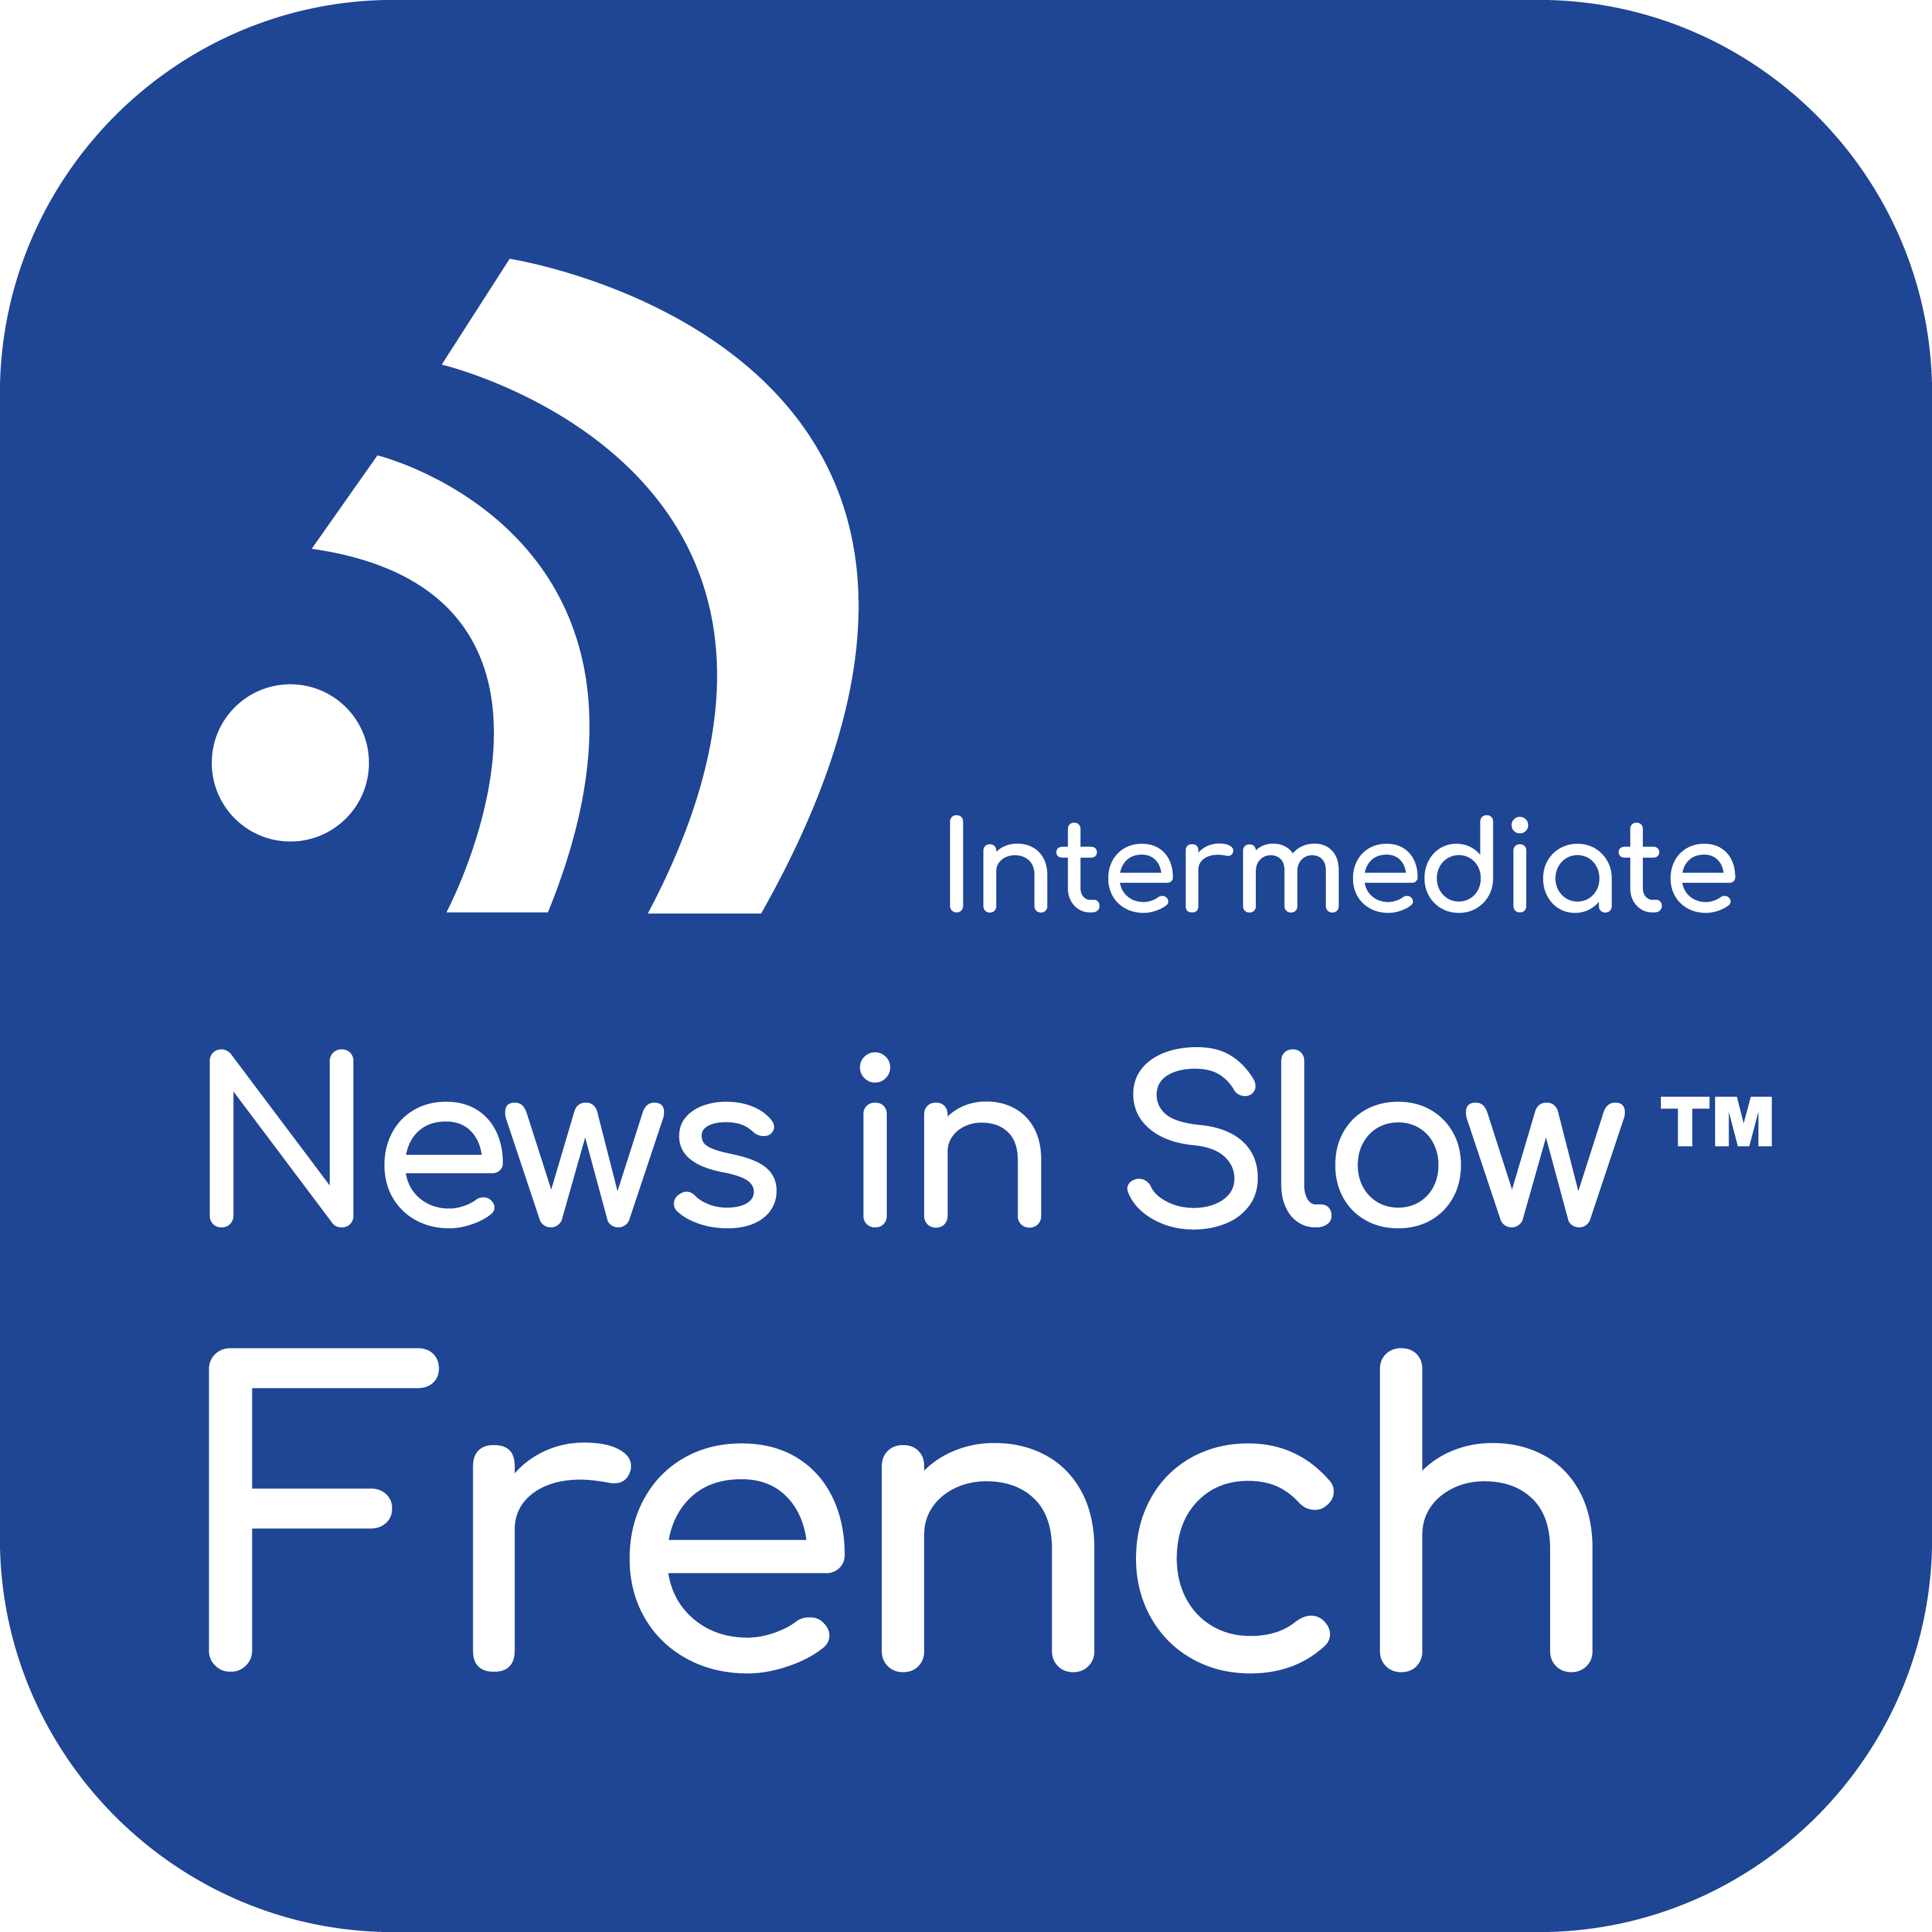 News in Slow French #497 - Best French Program for Intermediate Learners